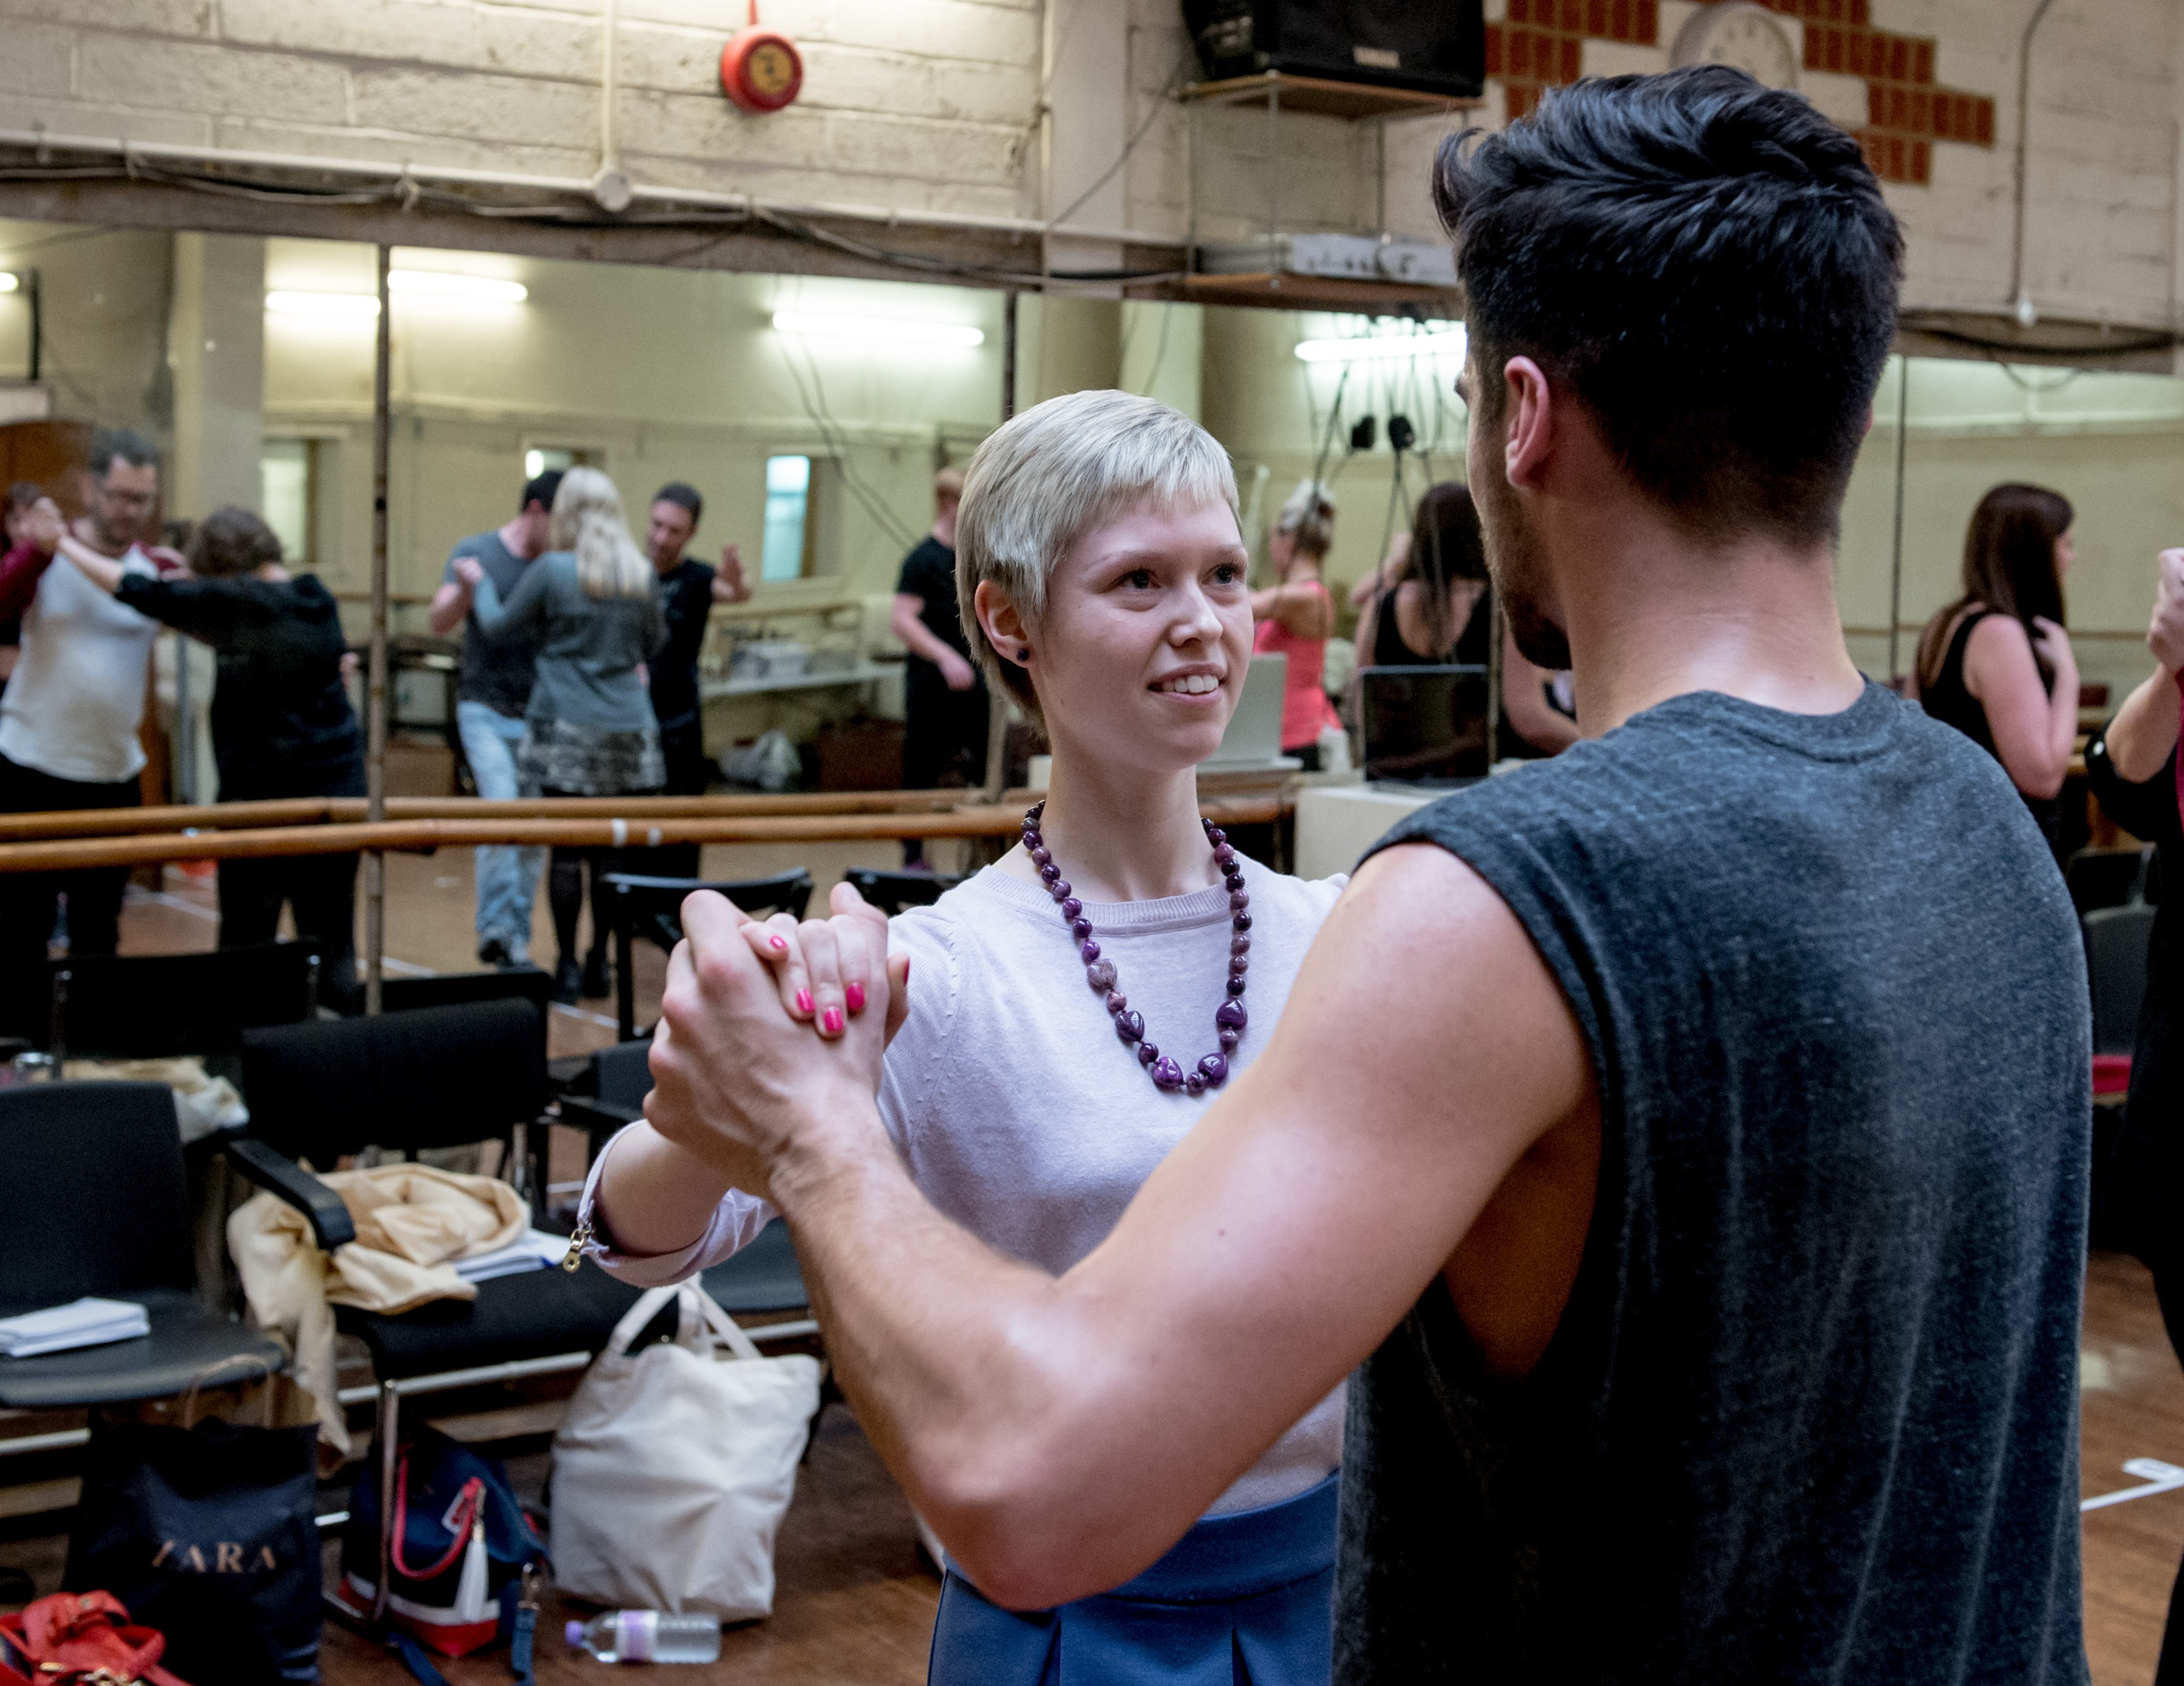 Rehearsals with Vincent Simone and Flavia Cacace for The Last Tango. Cast member Grant Thresh leads Georgina Butler through some Tango steps.